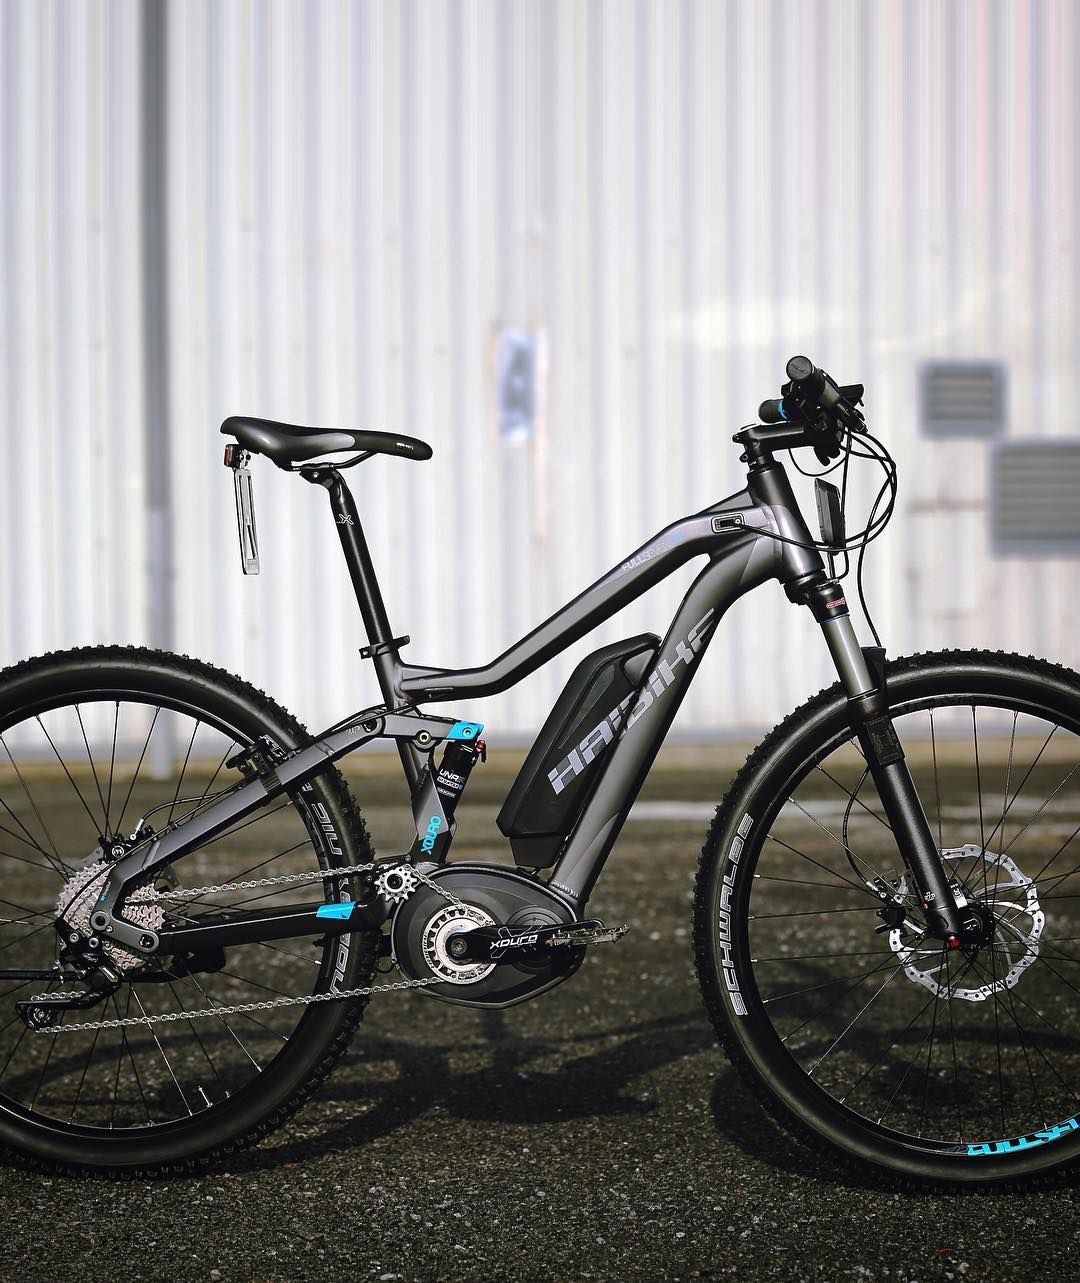 The Fullseven S Rx The Pedal Assistance Takes You Up To 45 Km H On This Model So Fast That It Needs A License Plate Ep Ebike Electric Bicycle Electric Bike